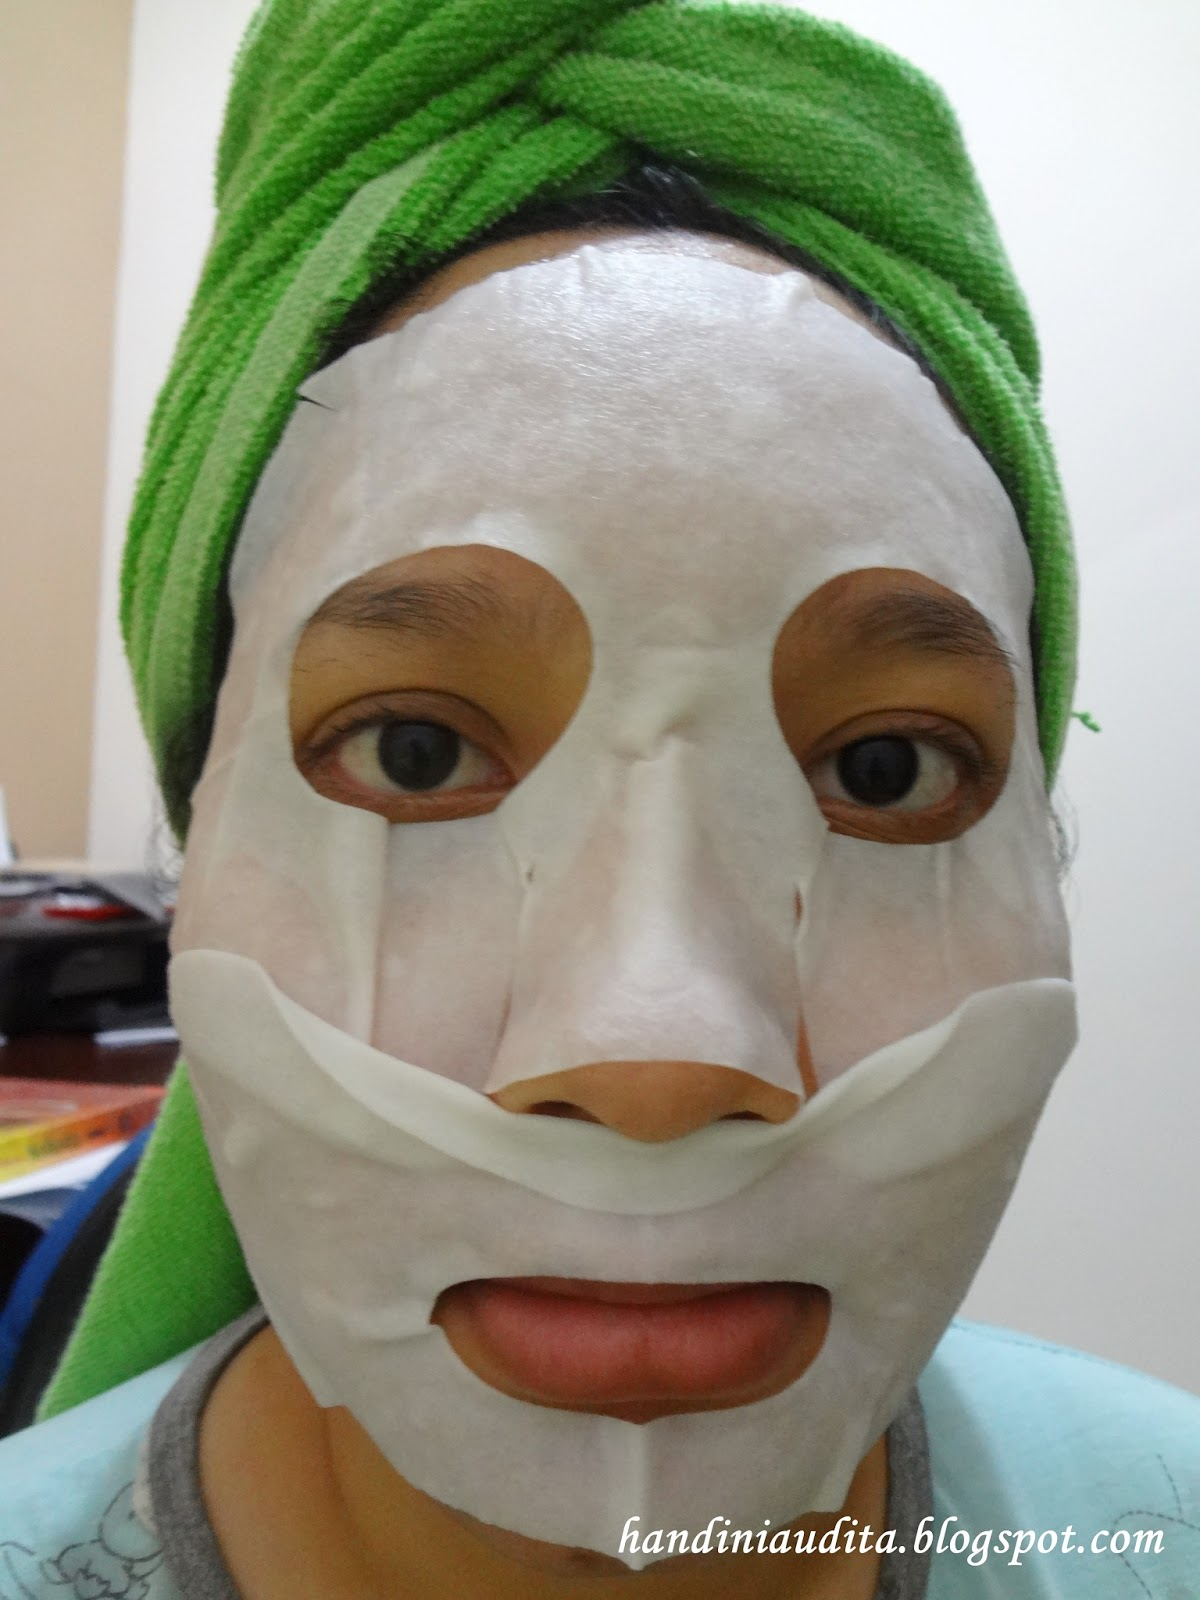 Face Mask_Mentholatum Beauty Mask Rohto.JPG